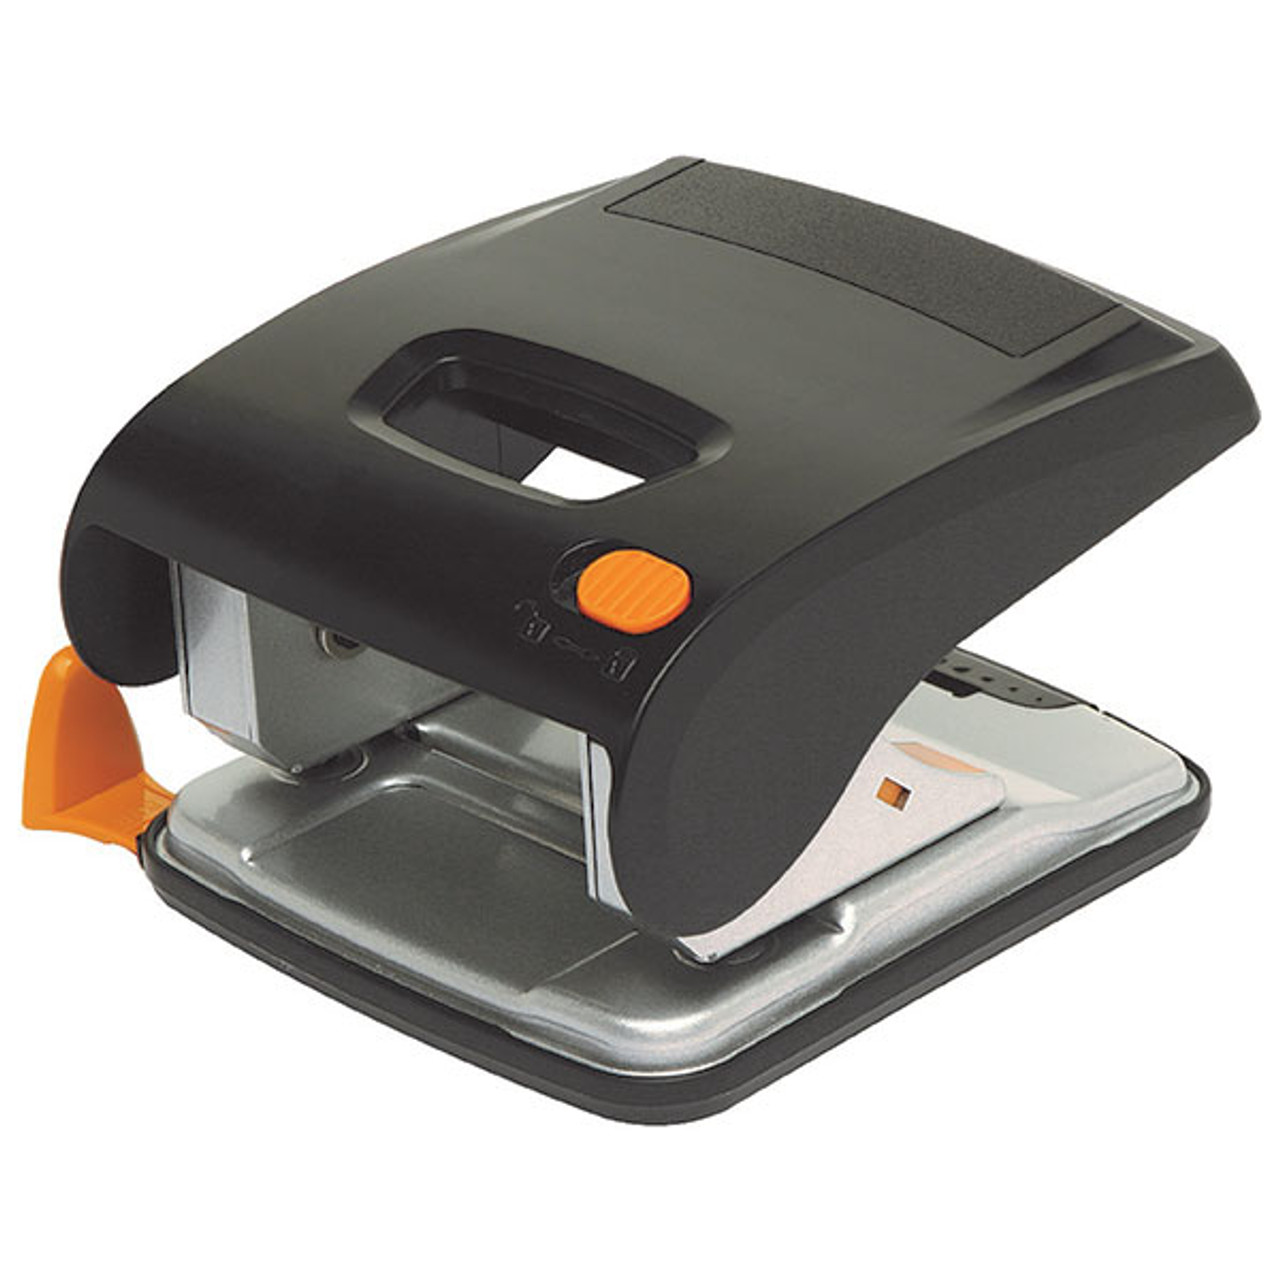 MARBIG 88033 LOW FORCE 2 HOLE PUNCH P300 BLACK